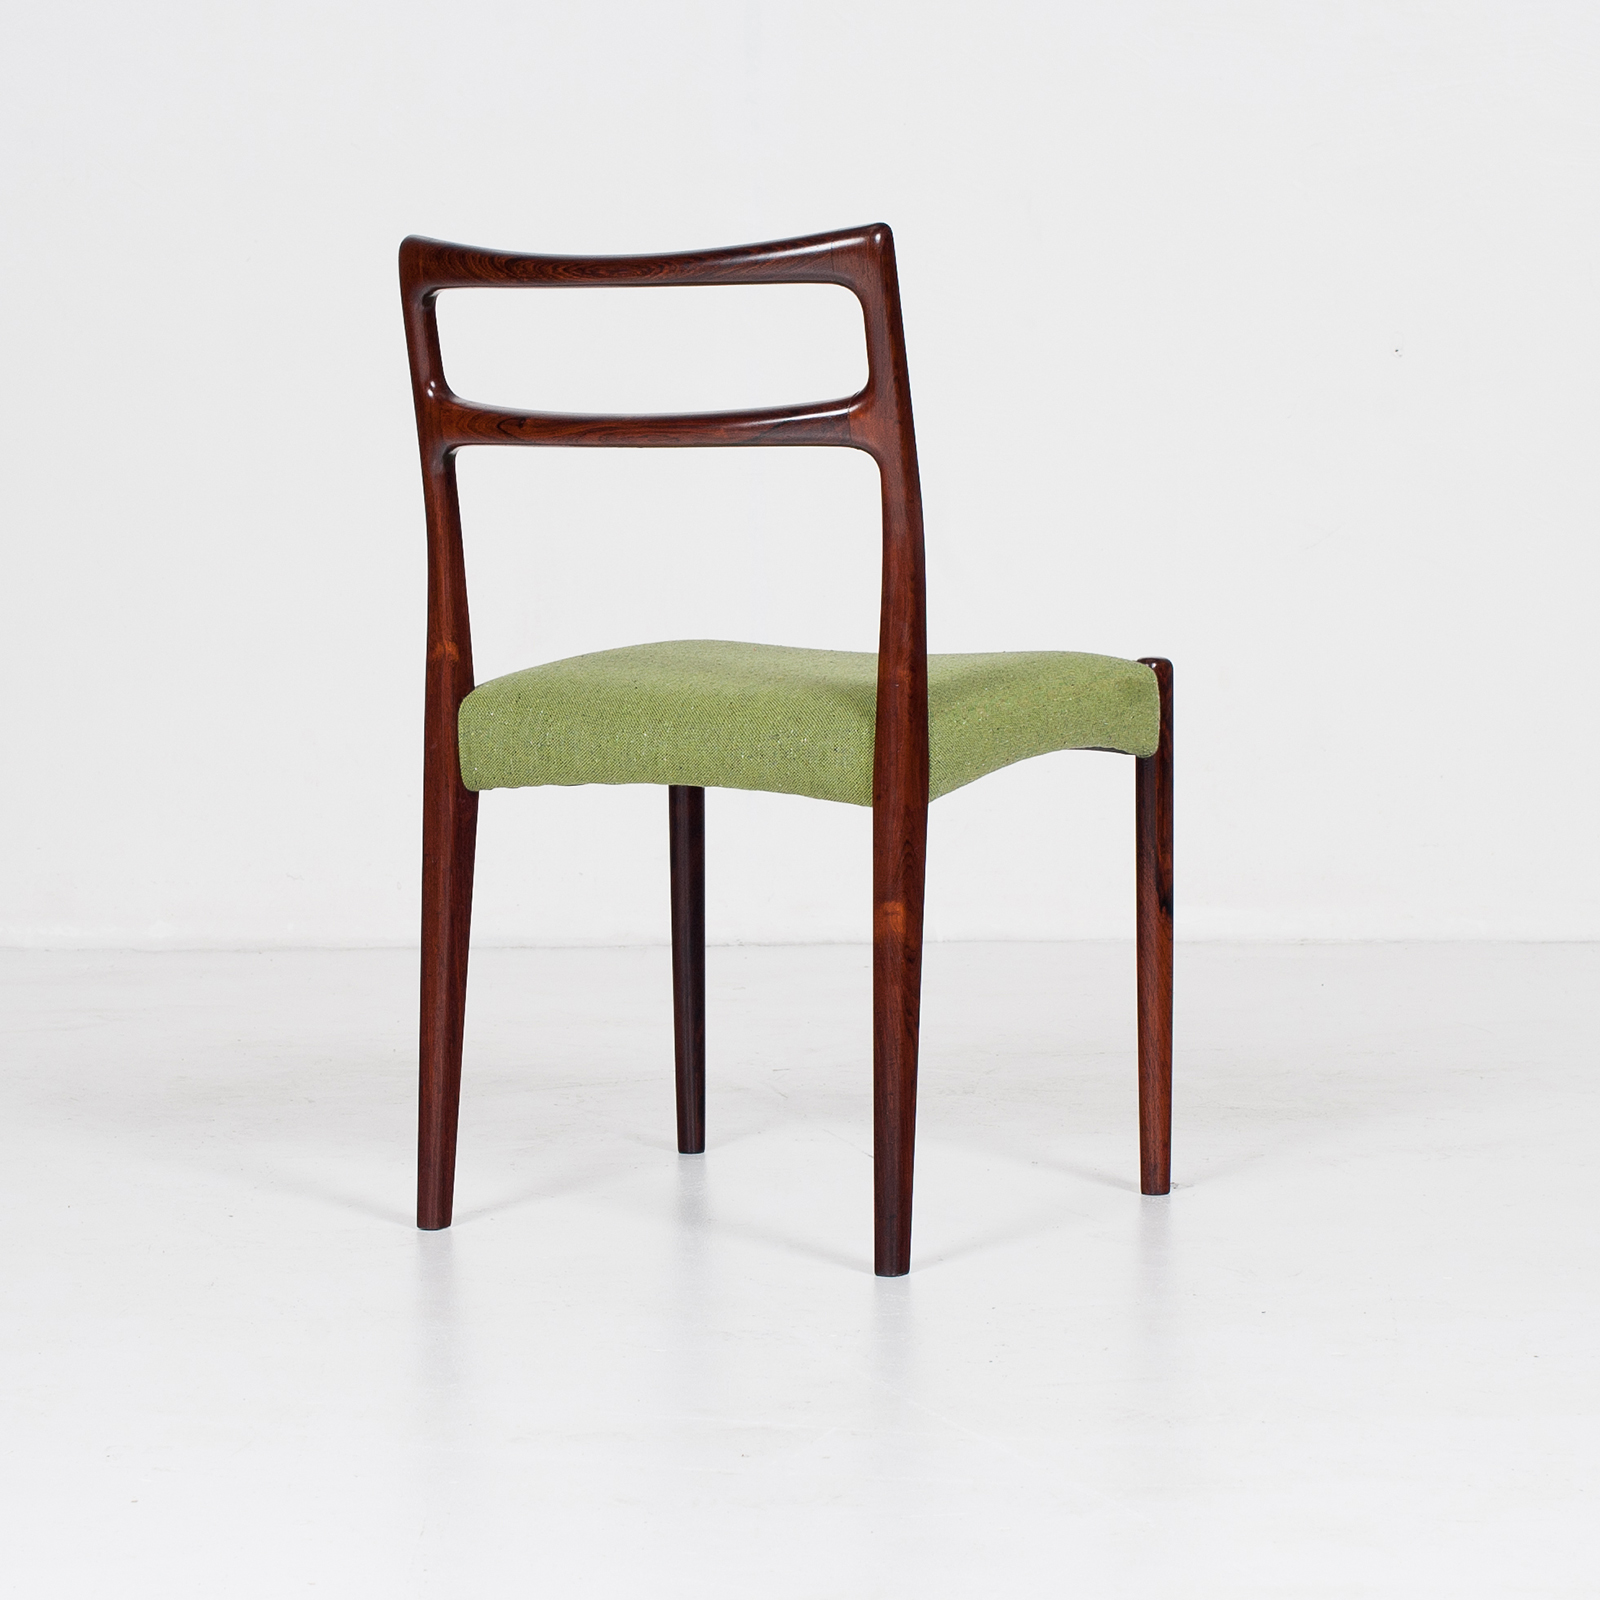 Set Of 4 Ladder Back Dining Chairs By Niels Moller In Rosewood, 1960s, Denmark32